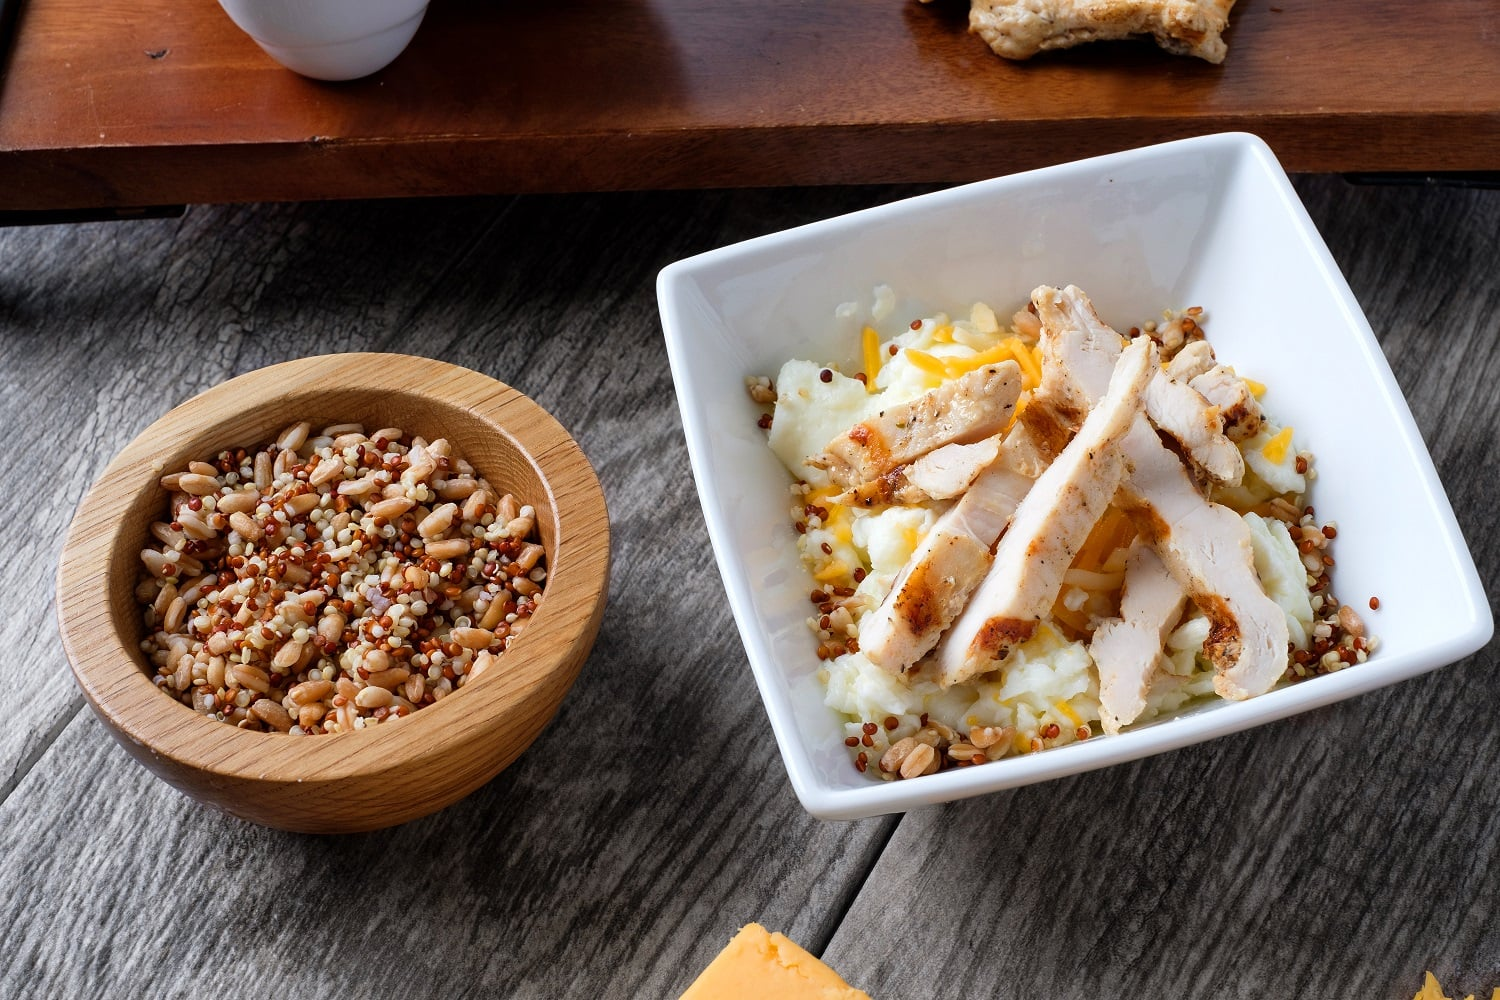 Kale and Grain Bowl? Egg Whites? Chick-fil-A Adds Some Unexpected Menu Items 9/01/168/29/16POPSUGARFitnessHealth NewsChick-fil-A's New Kale Grain BowlKale and Grain Bowl? Egg Whites? Chick-fil-A Adds Some Unexpected Menu Items August 29, 2016 by Kelsey Garcia407 Shares Though Chick-fil-A is known for its fried chicken sandwich, it seems like the fast-food chain is trying to contrast its indulgent menu mainstays with some unexpected additions. Earlier this year, Chick-fil-A replaced its coleslaw with a kale salad, and now, the chain is introducing three more light options: the Hash Brown Scramble, the Egg White Grill Bowl, and the Harvest Kale and Grain Bowl.Perhaps the most unexpected is the Harvest Kale and Grain Bowl — a protein-packed bowl with red quinoa, white quinoa, farro, butternut squash, diced apples, and chopped kale. The bowl is finished off with goat cheese, feta cheese, dried cherries, and roasted nuts. It actually sounds like something we would whip up at home! With the addition of chicken, t - 웹